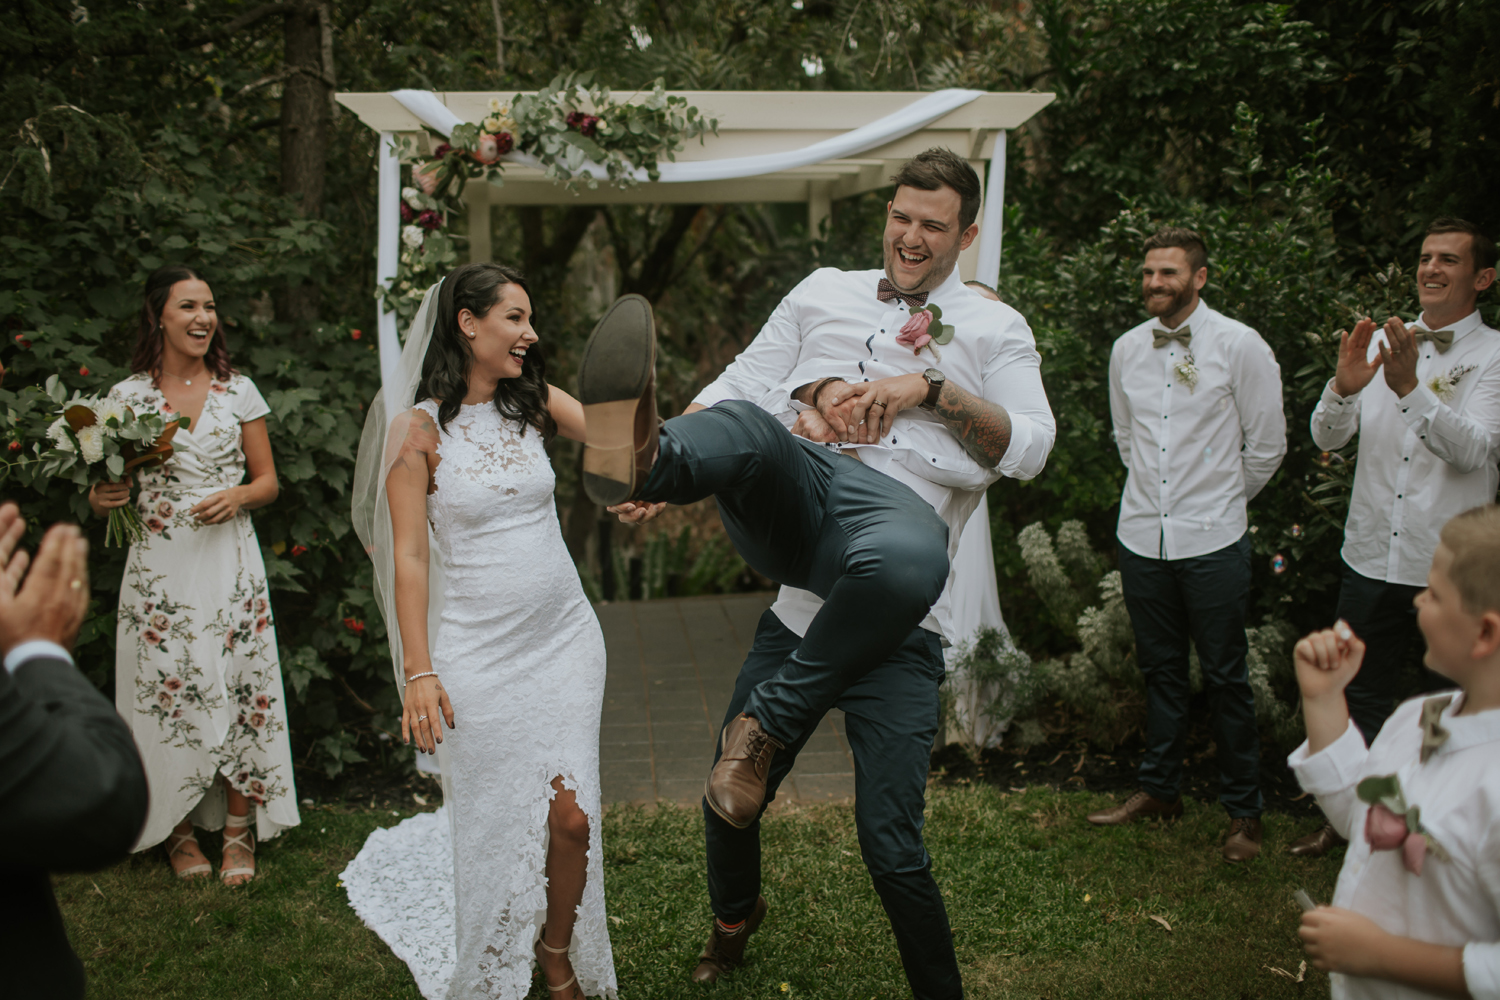 Your Complete Guide to Planning an Awesome Backyard Wedding - Your Complete Guide To Planning An Awesome Backyard Wedding — Unbridely